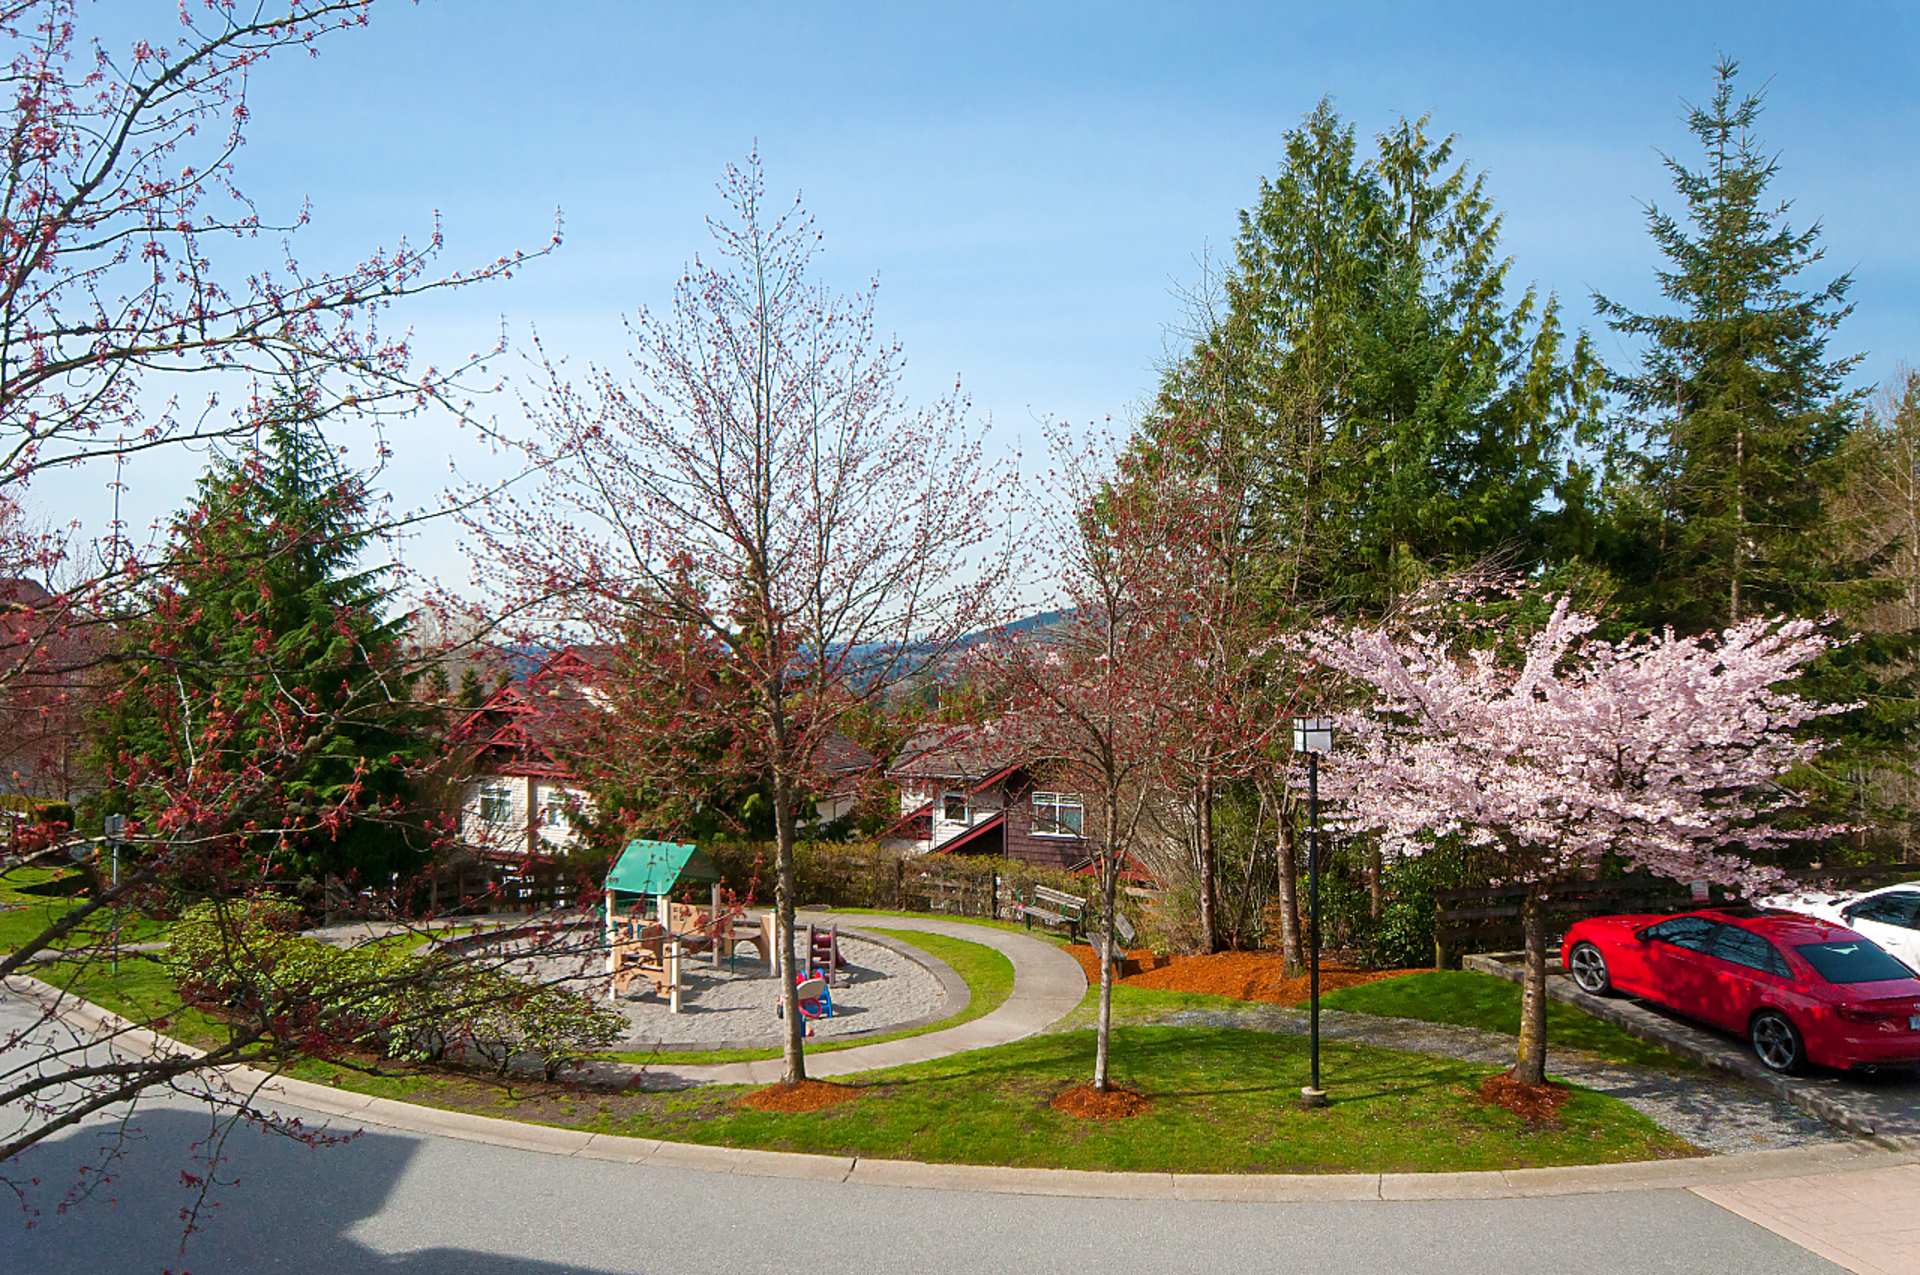 012 at 33 - 15 Forest Park Way, Heritage Woods PM, Port Moody